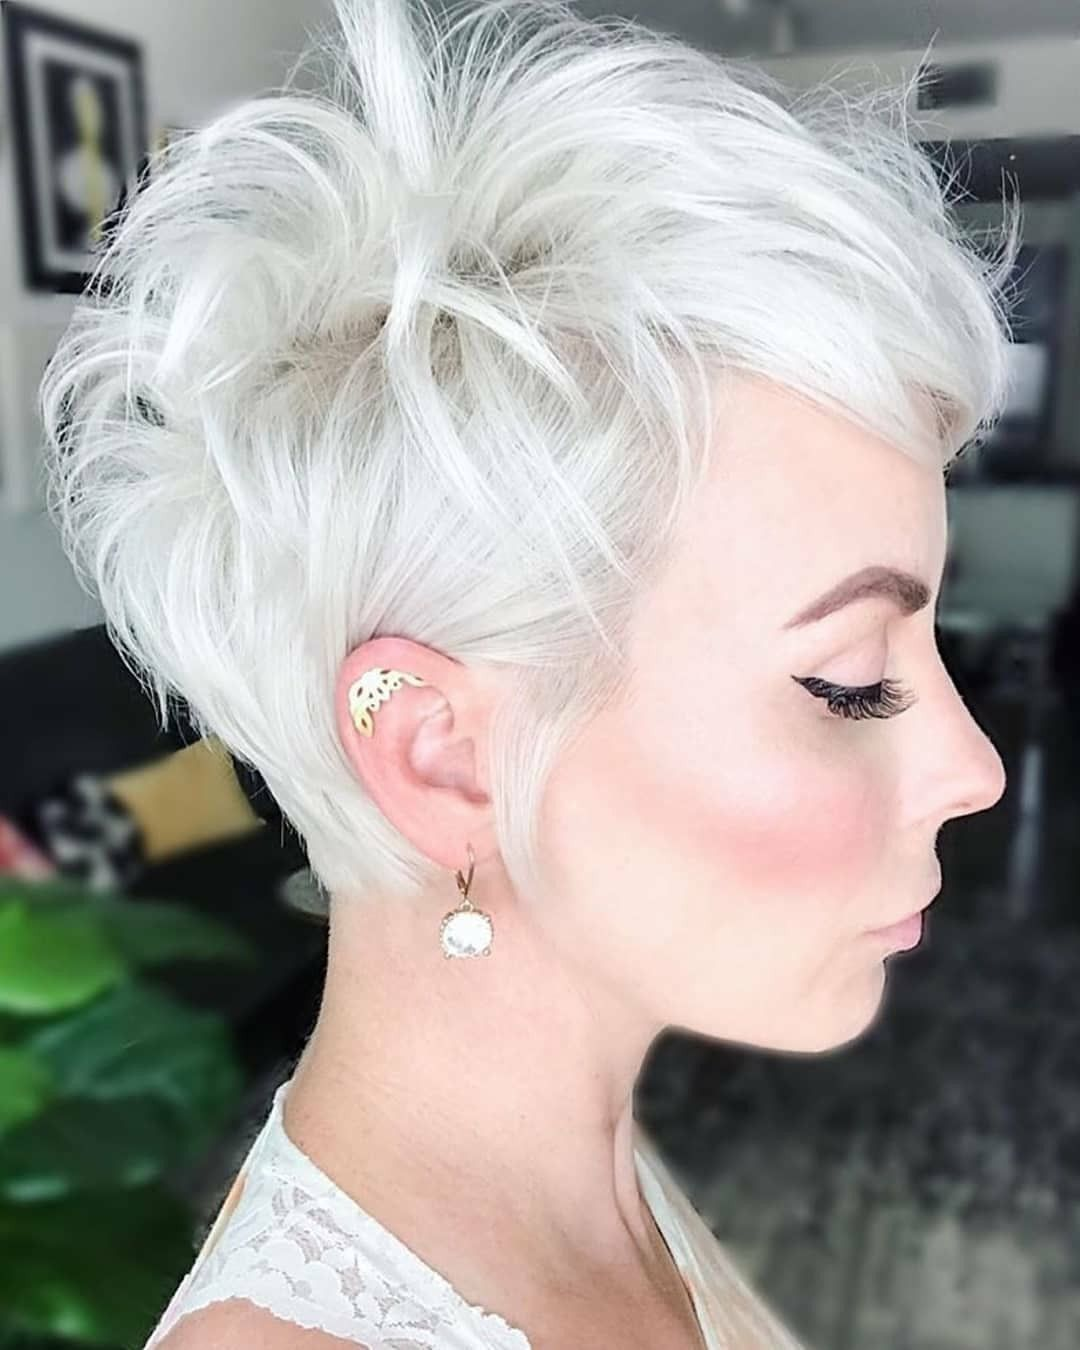 56 Gorgeous Short Hairstyles For Women 2020 In 2020 Short Hair Styles Pixie Short Hairstyles For Thick Hair Thick Hair Styles